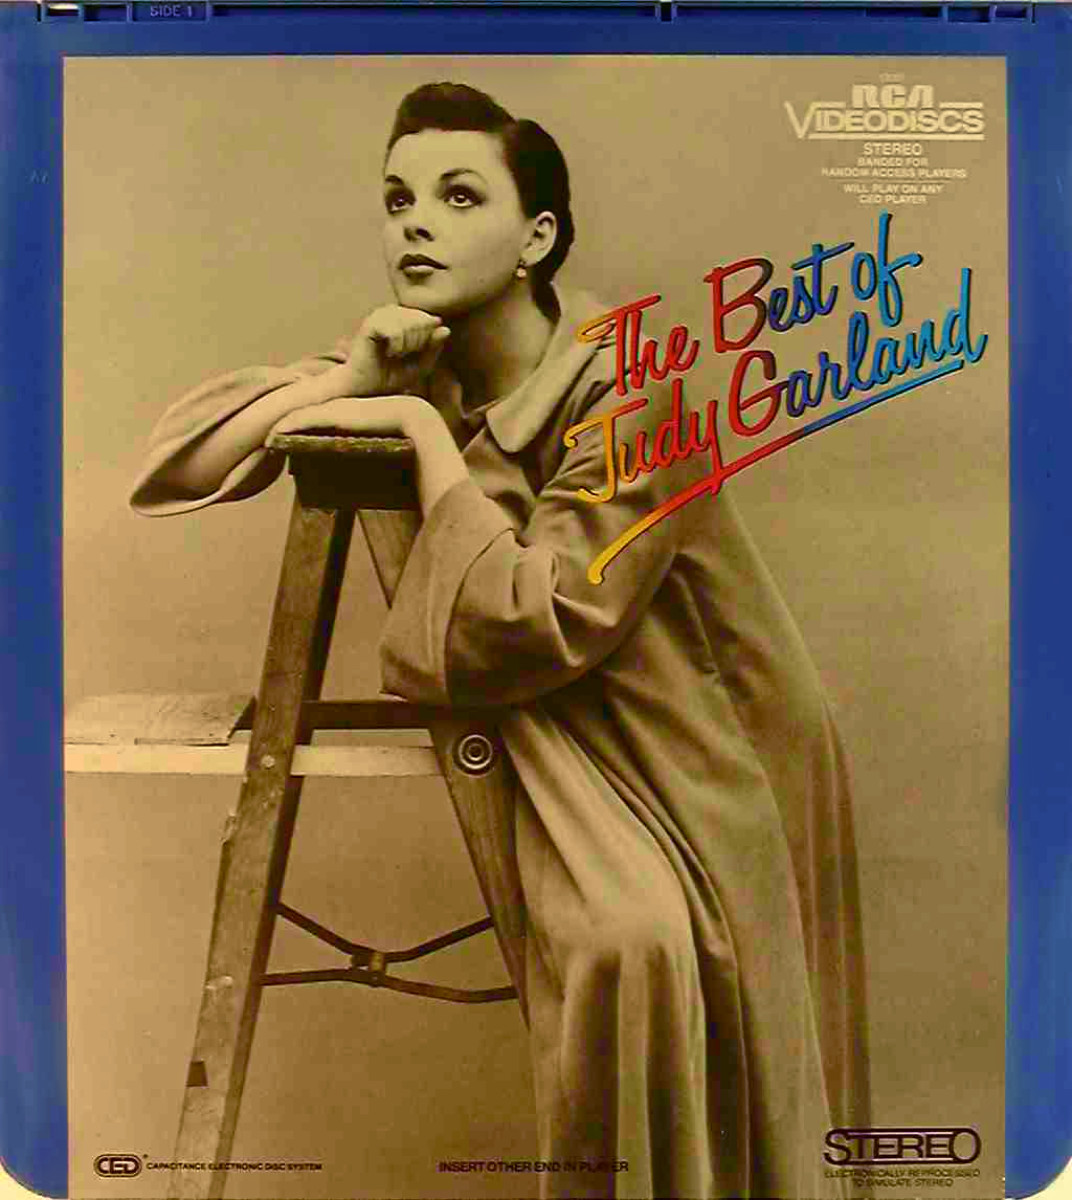 The front side of the disc cover or  The Best Of Judy Garland Movie CED Selectavision Video Disc